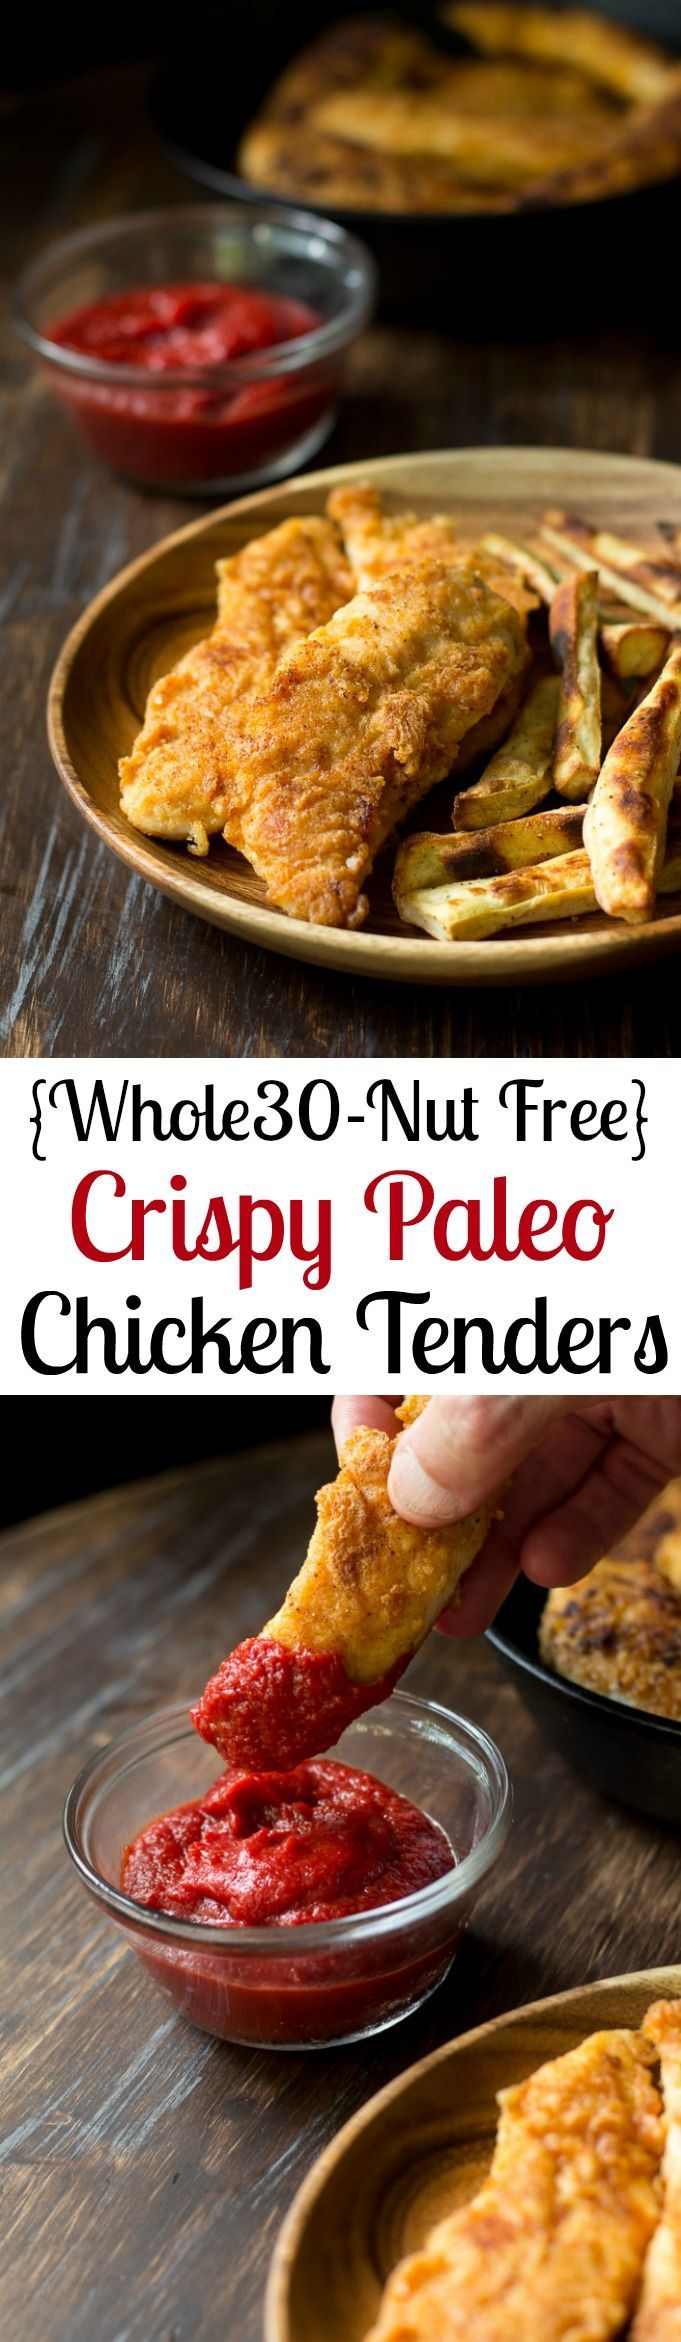 Crispy Paleo Chicken Tenders that are Whole30 friendly, and %22breaded%22 with a savory mixture of cassava, coconut flour and spices for amazing grain free, nut free crispy chicken tenders! (Paleo Chicken)